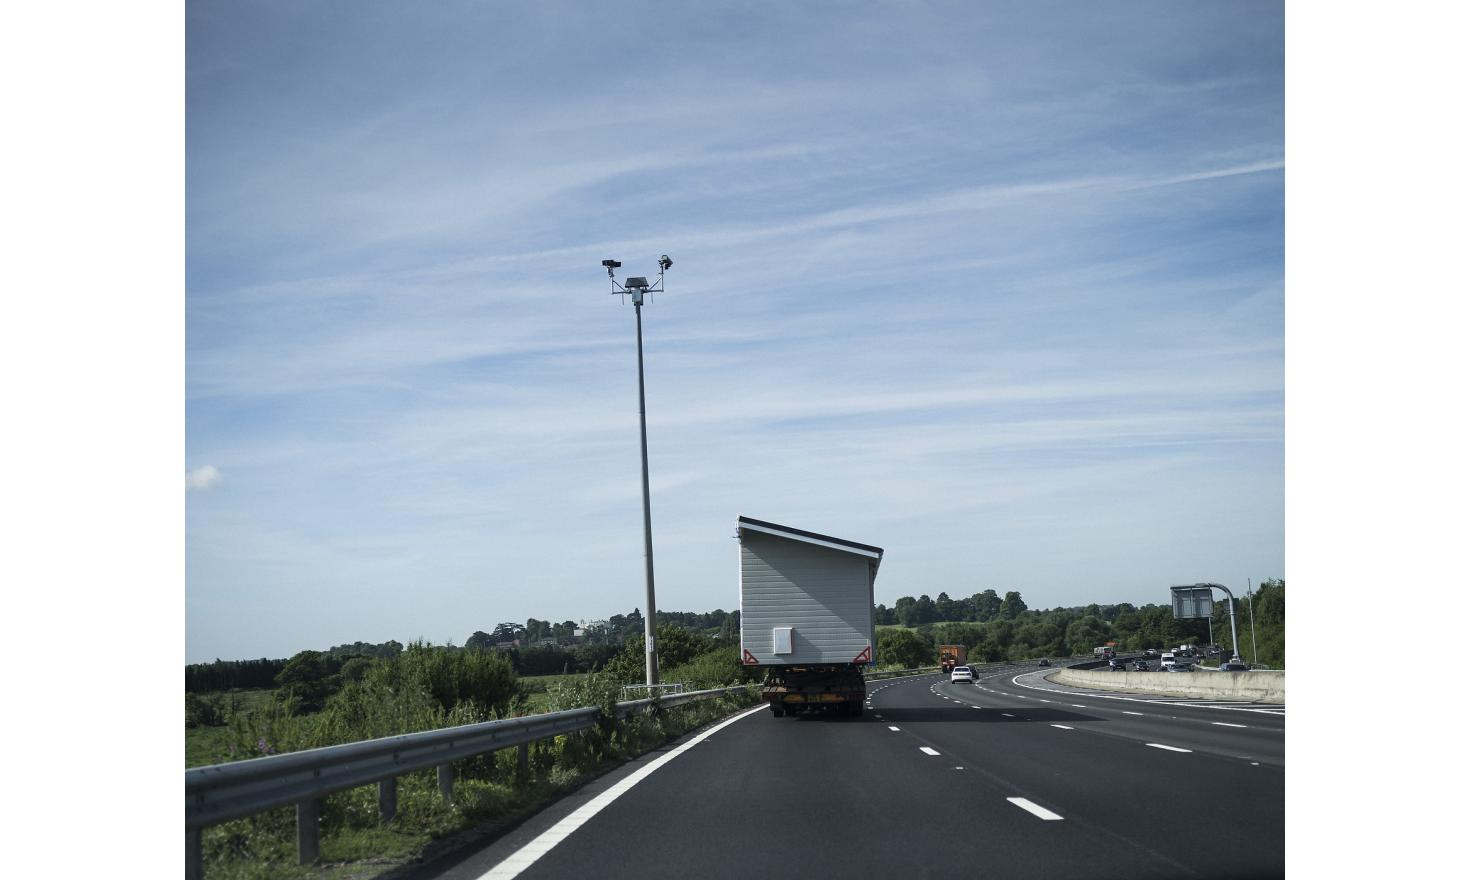 A mobile-home being transported on the motorway in the United Kingdom.